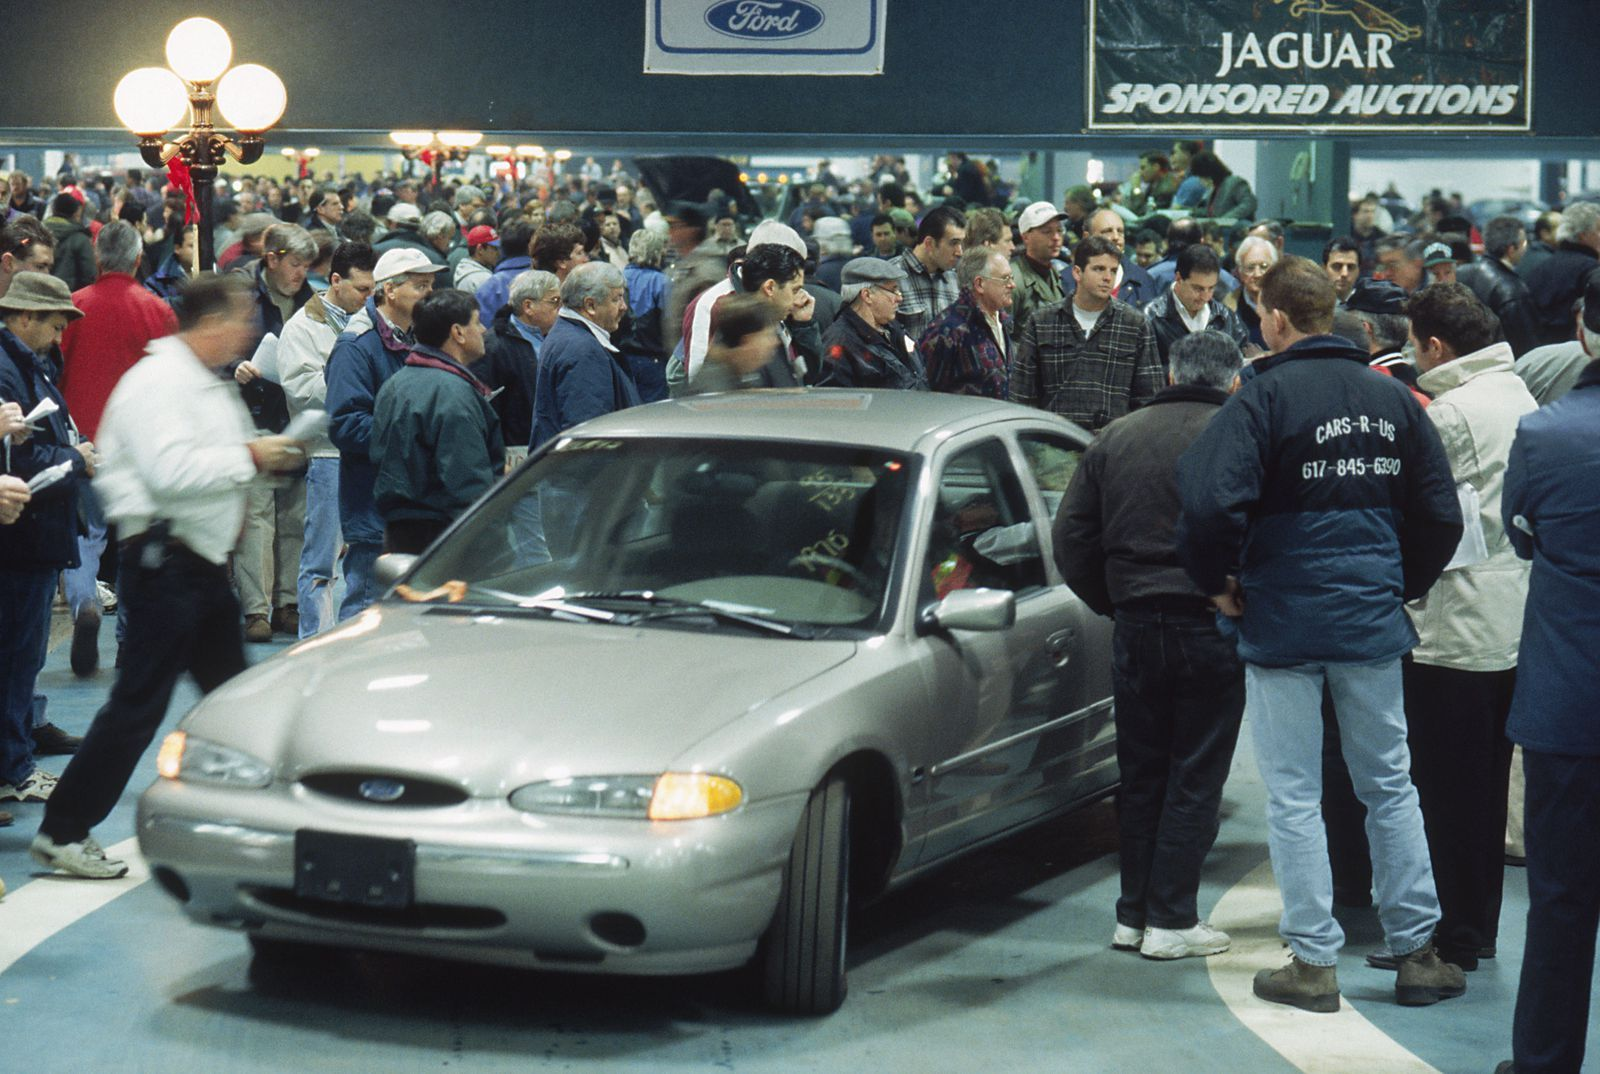 10 Tips for Buying a Car at Auction